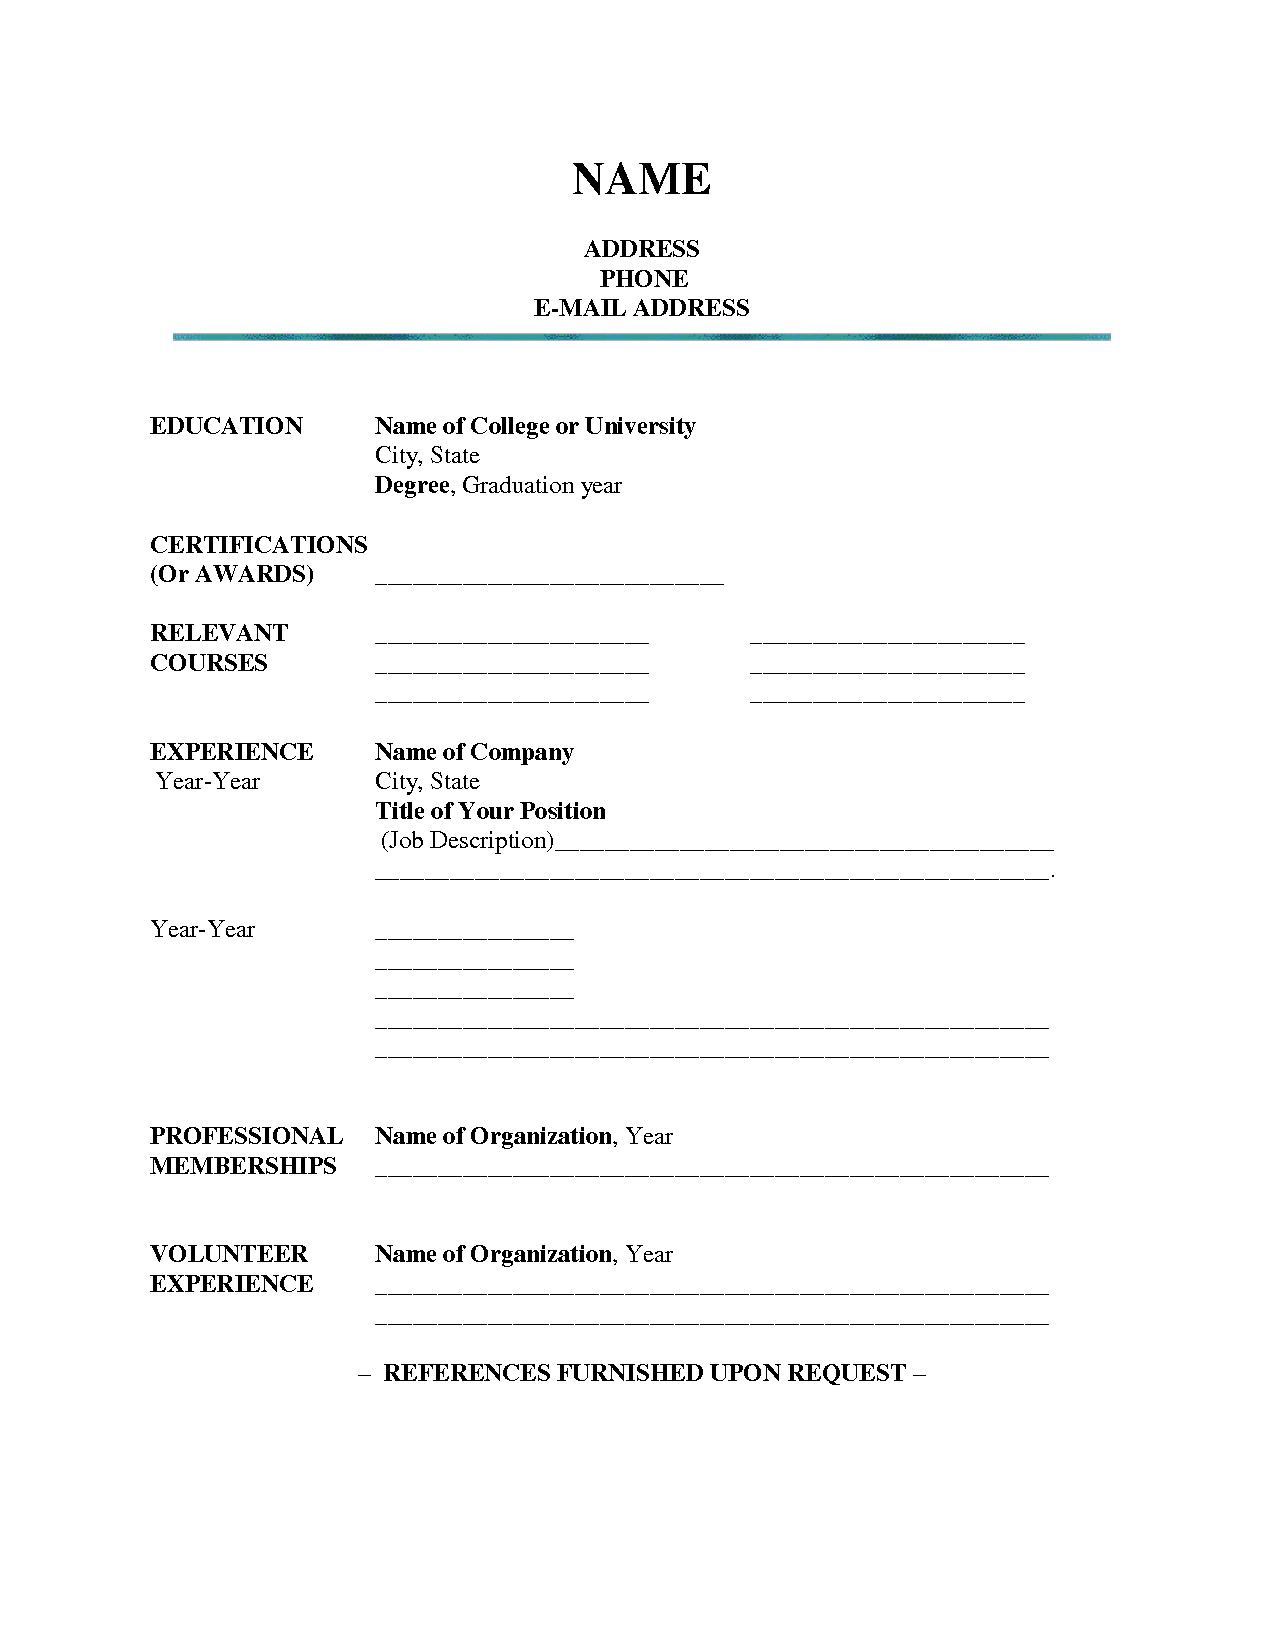 blank resume templates for students resume builderresume templates